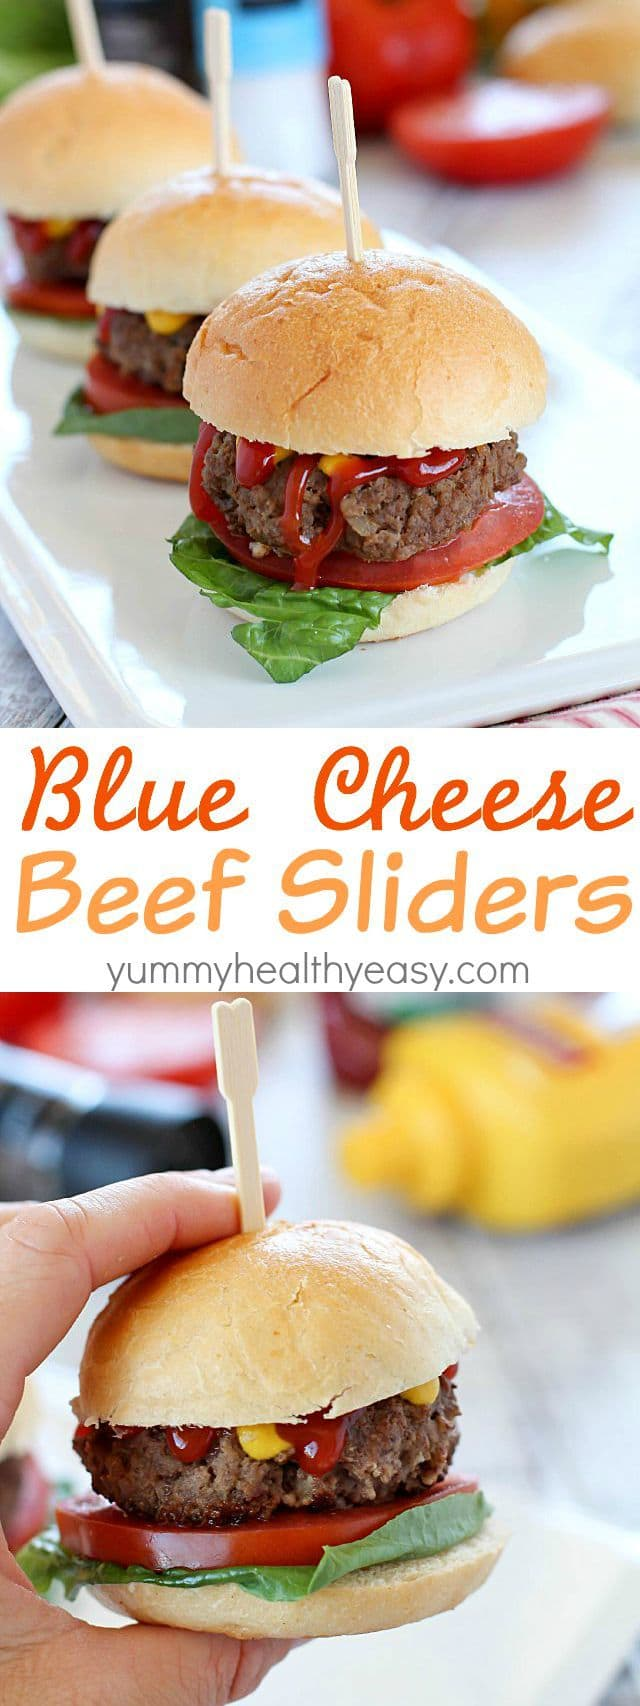 Juicy, flavorful Blue Cheese Beef Sliders for the win! Not only are these delicious, but they're super easy too! And with a secret ingredient... #ad